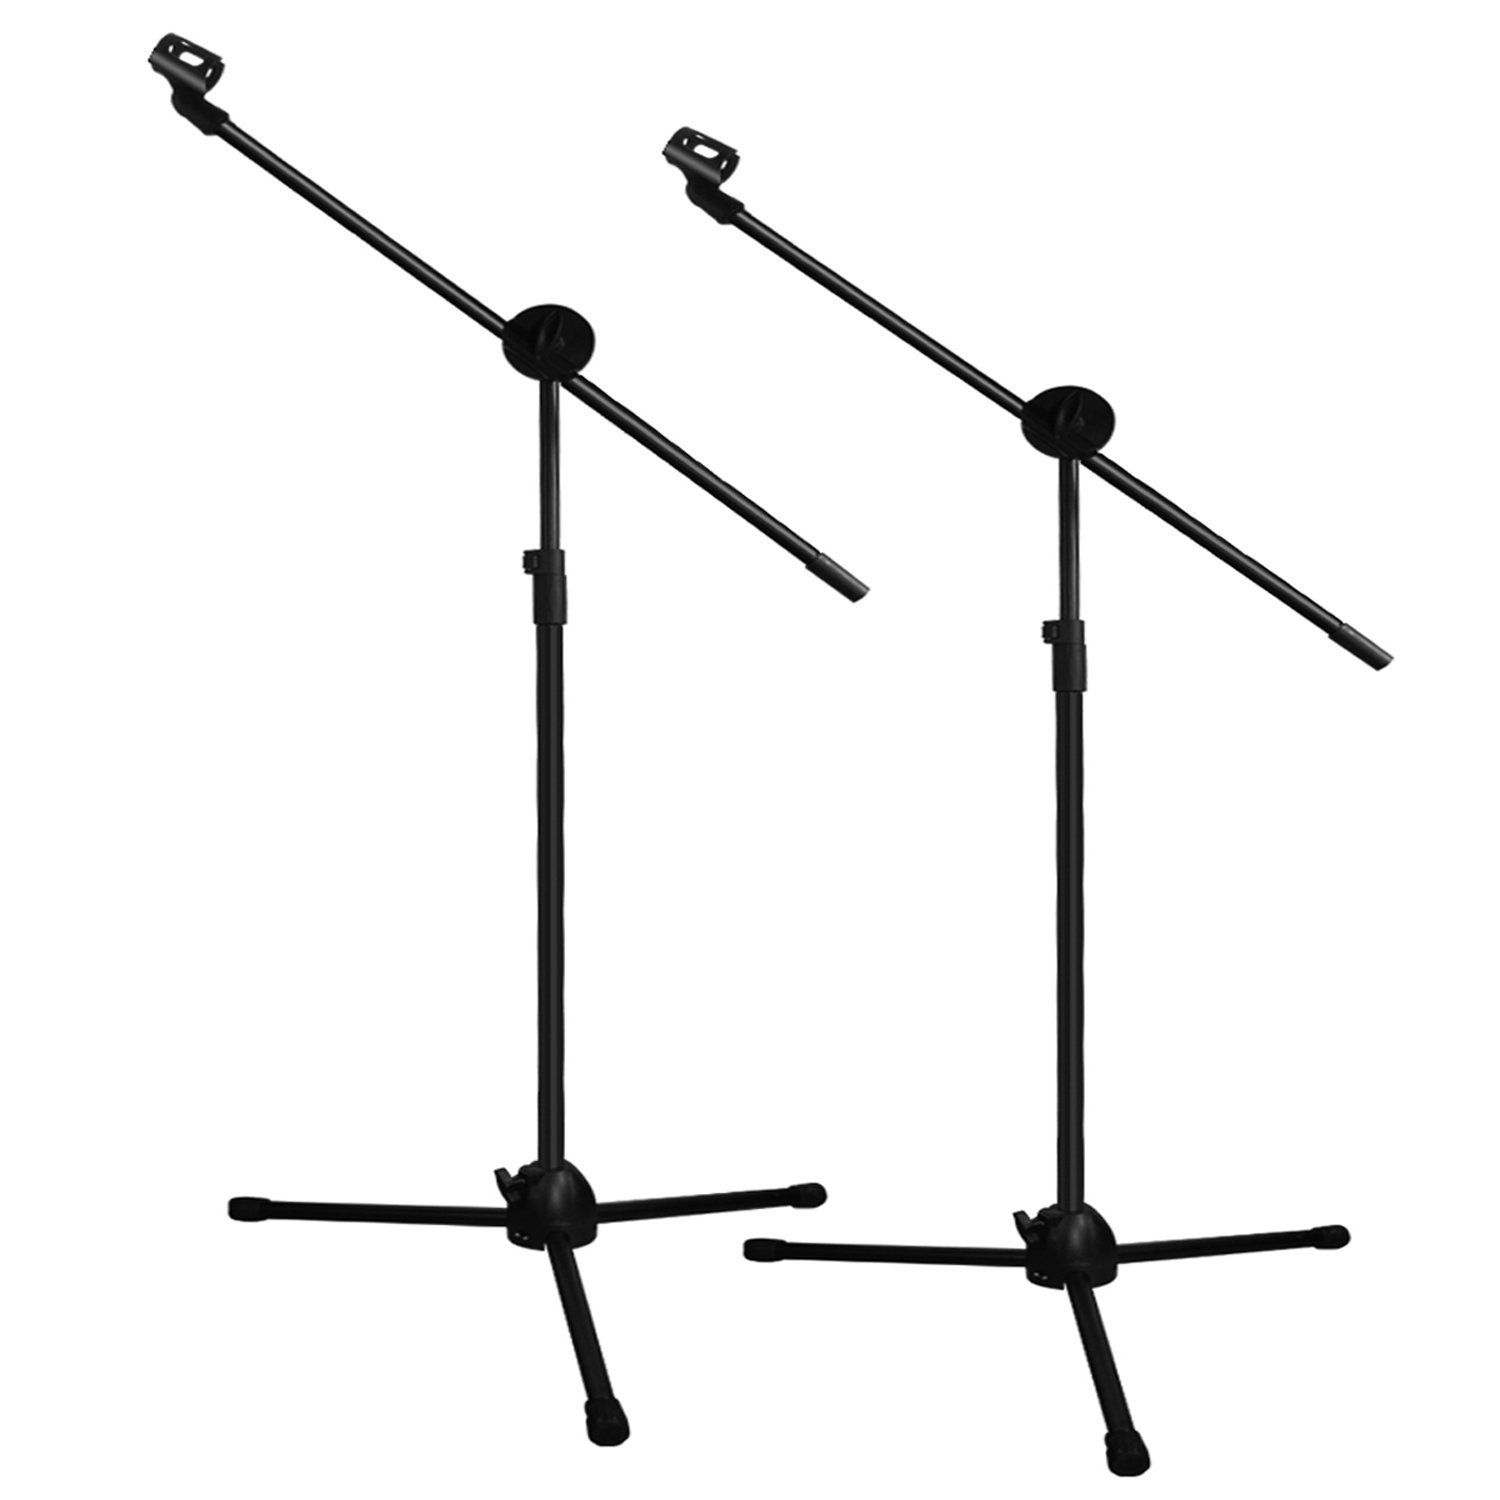 Ohuhu Tripod Boom Microphone Stand, Dual Mic Clip, Collapsible, Black, 2-Pack Y42-80200-04-CA